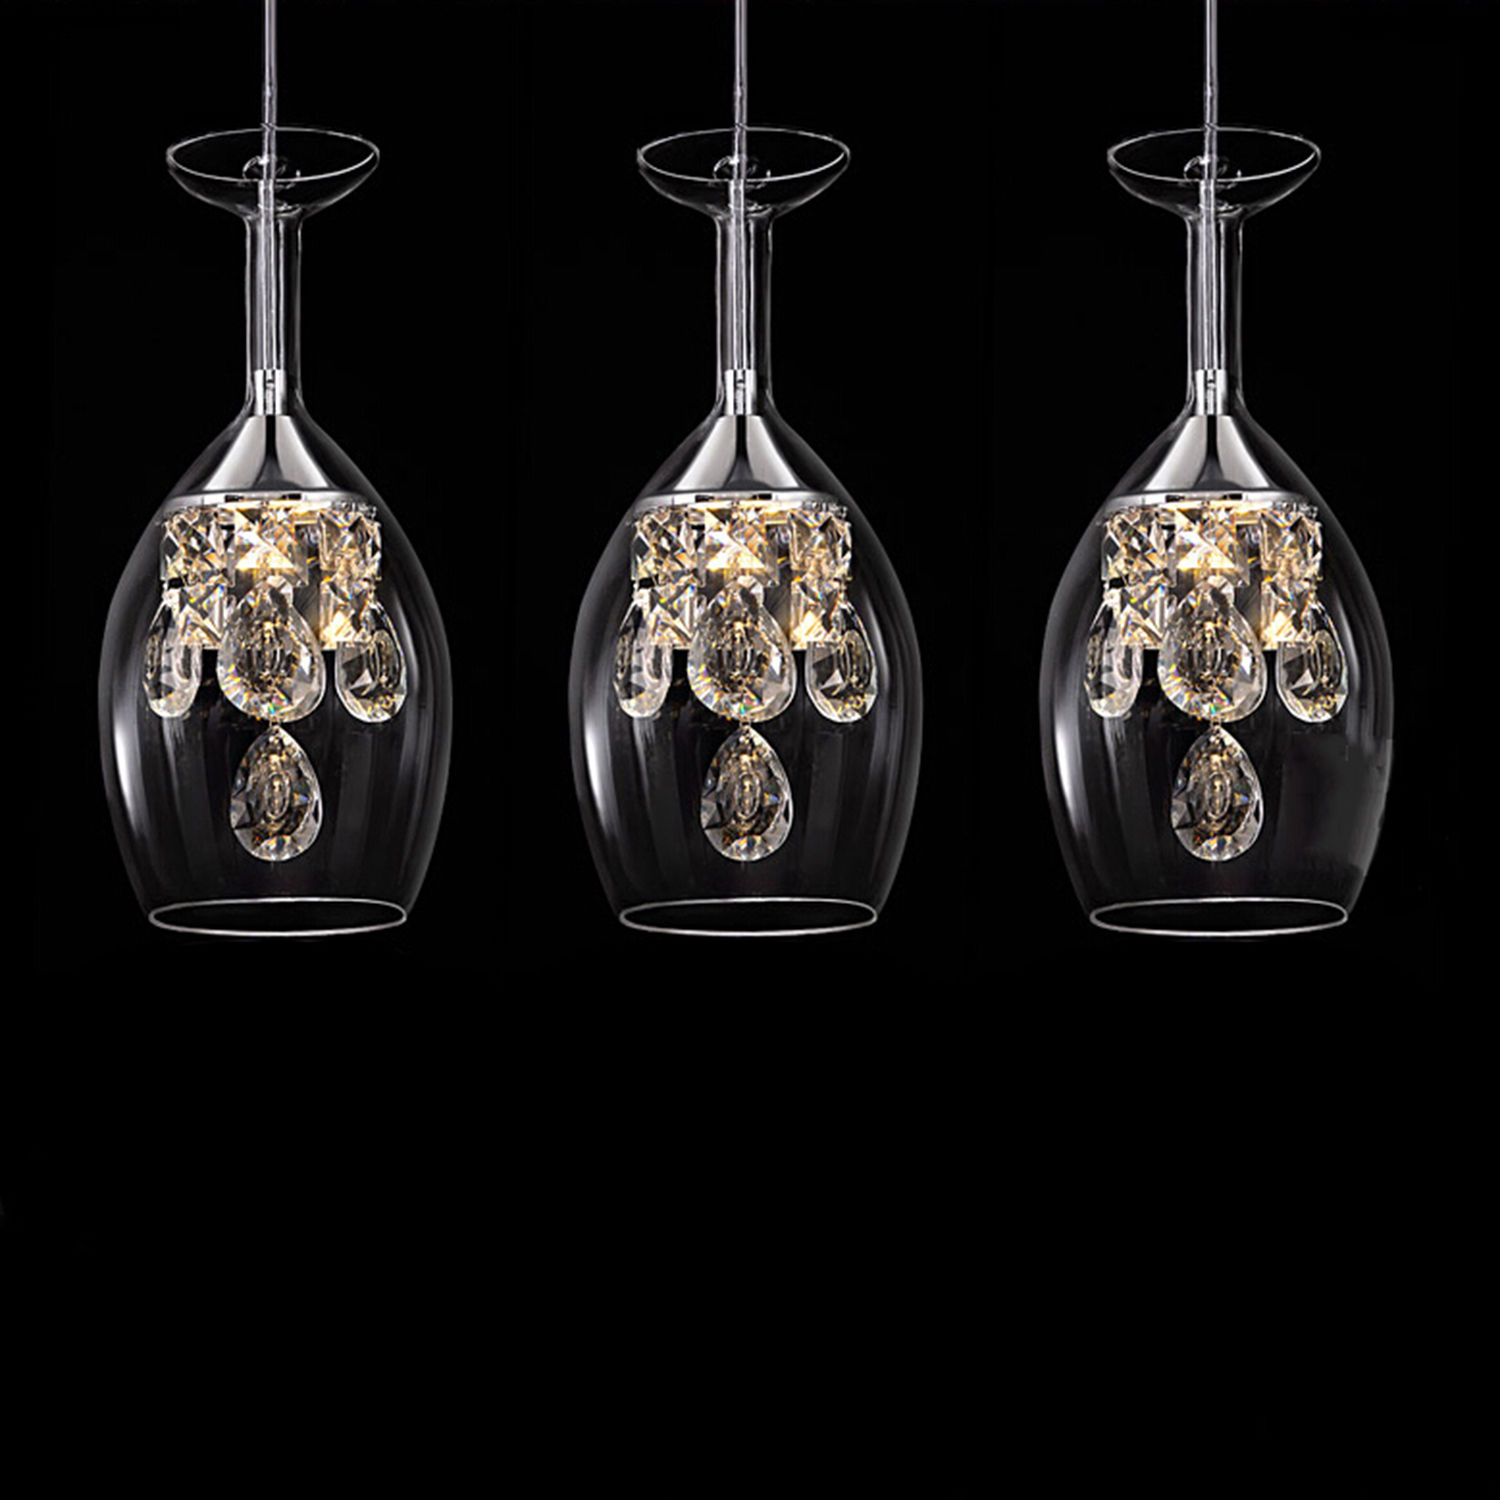 Modern fashion dining room K9 Crystal 5w LED Chandelier lamp DIY home deco living room clear glass cup Chandeliers light Fixture<br>